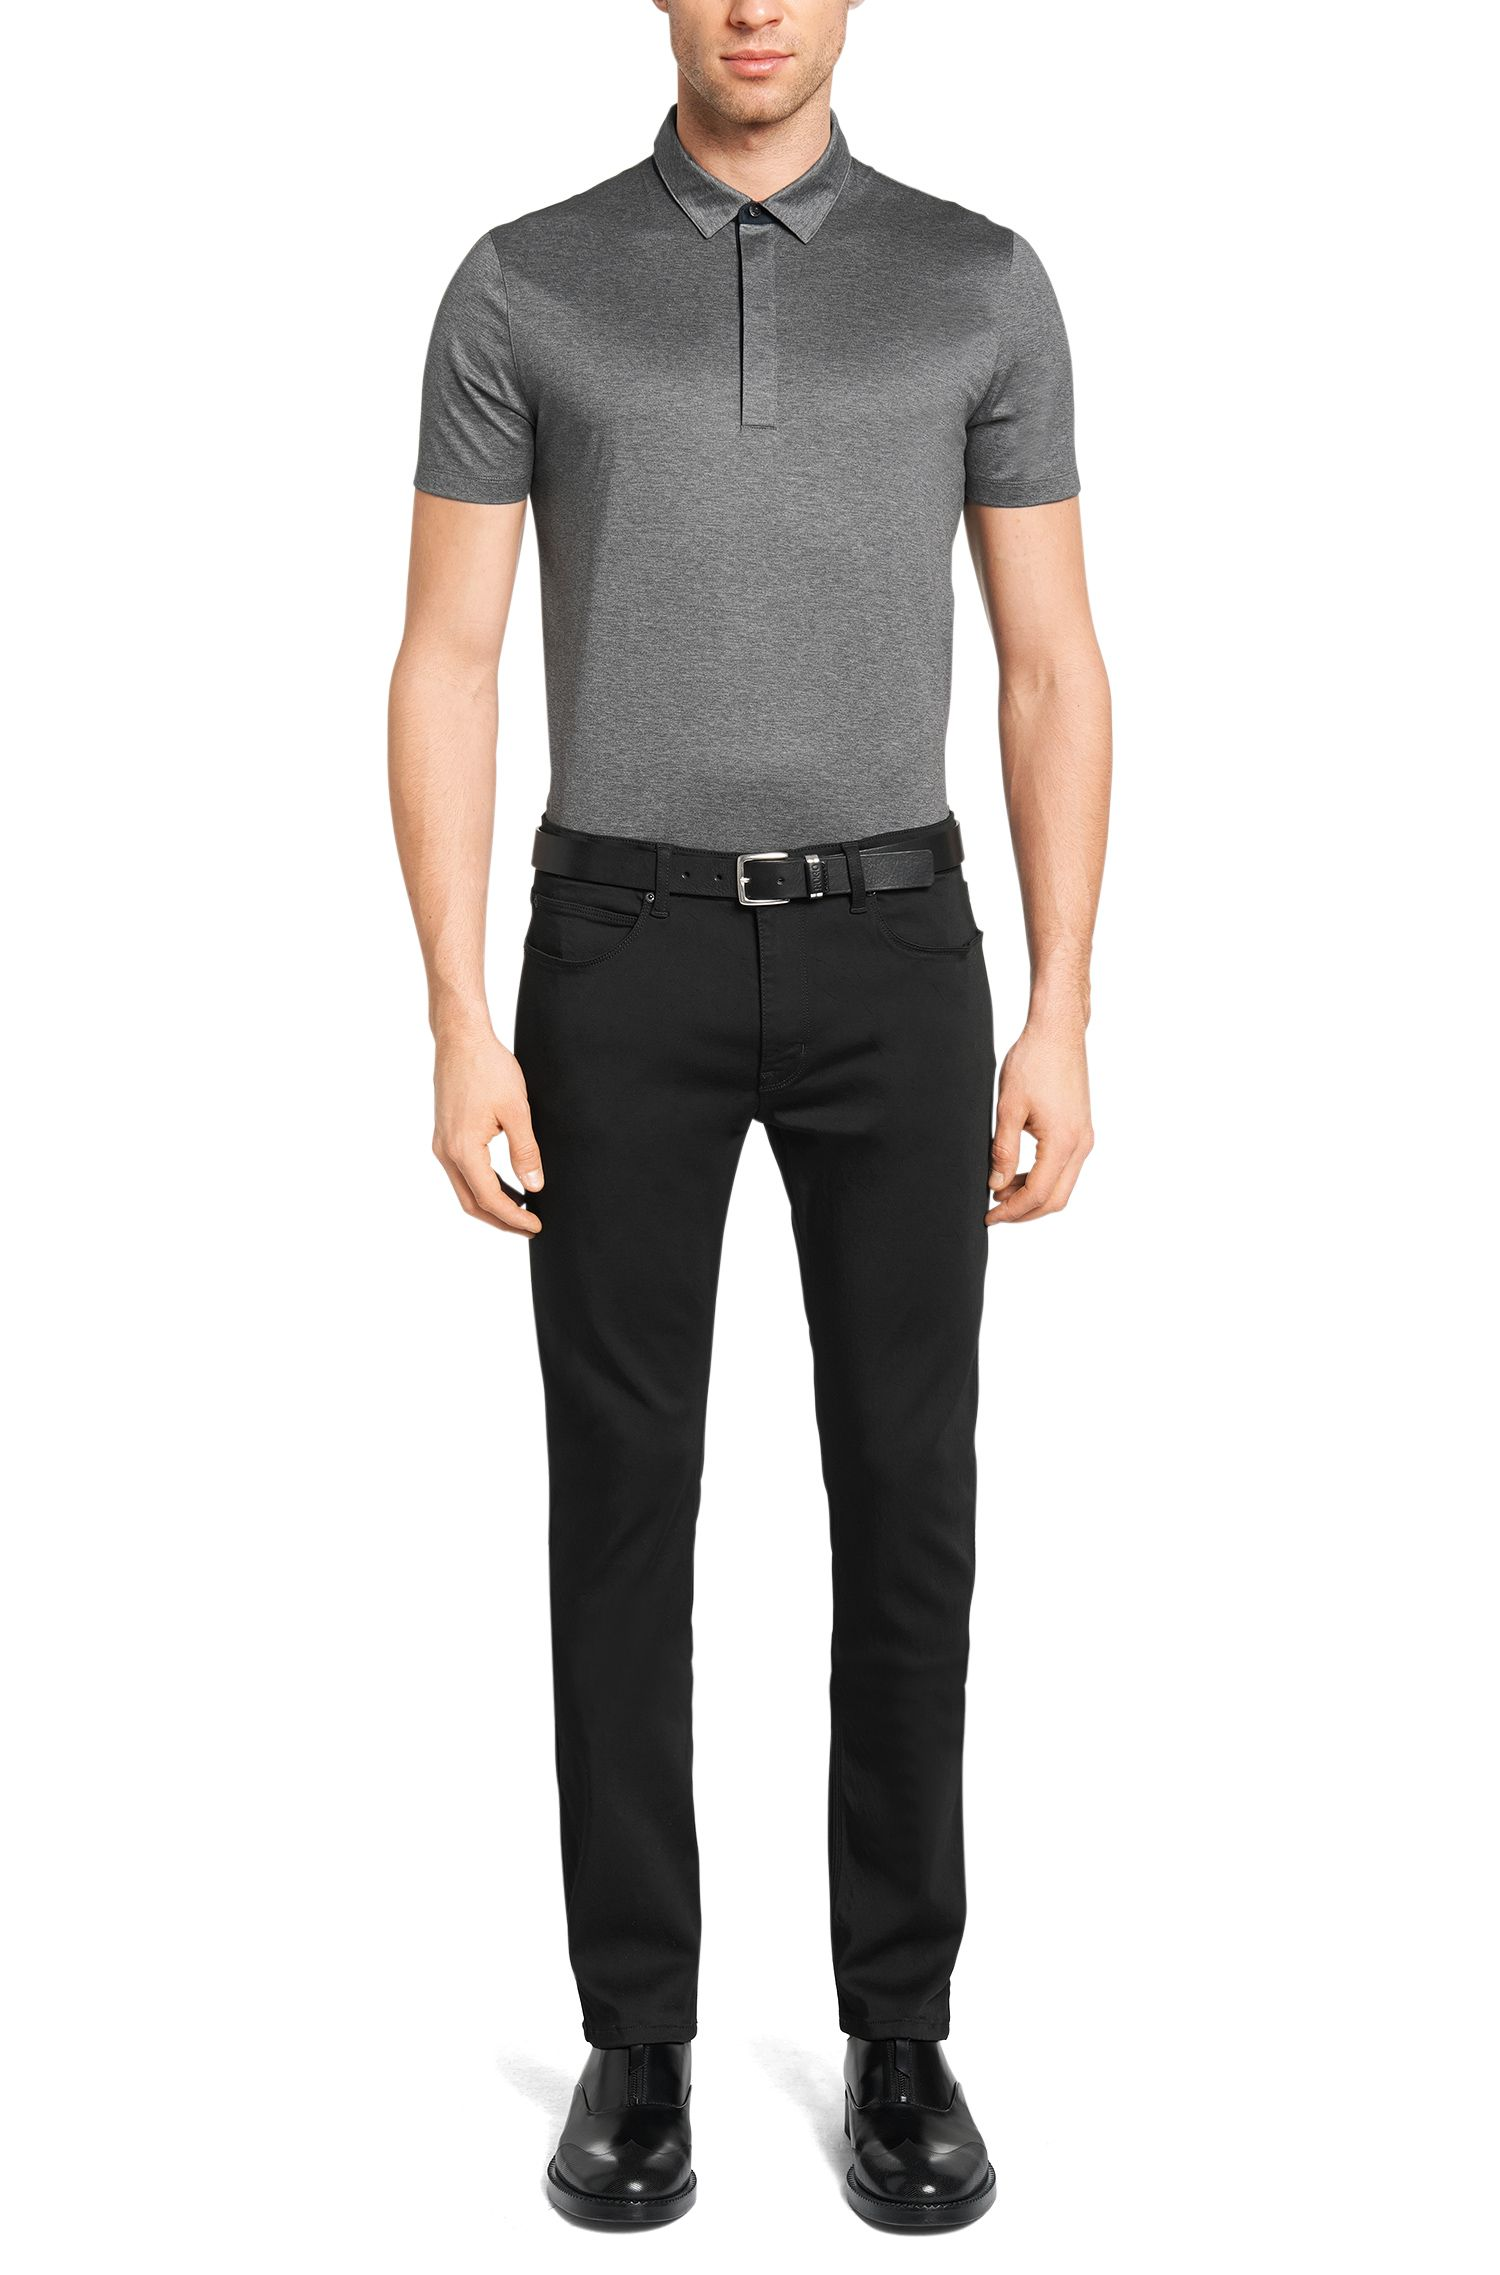 Unifarbene Skinny-Fit Jeans aus Modal-Mix: 'HUGO 734'